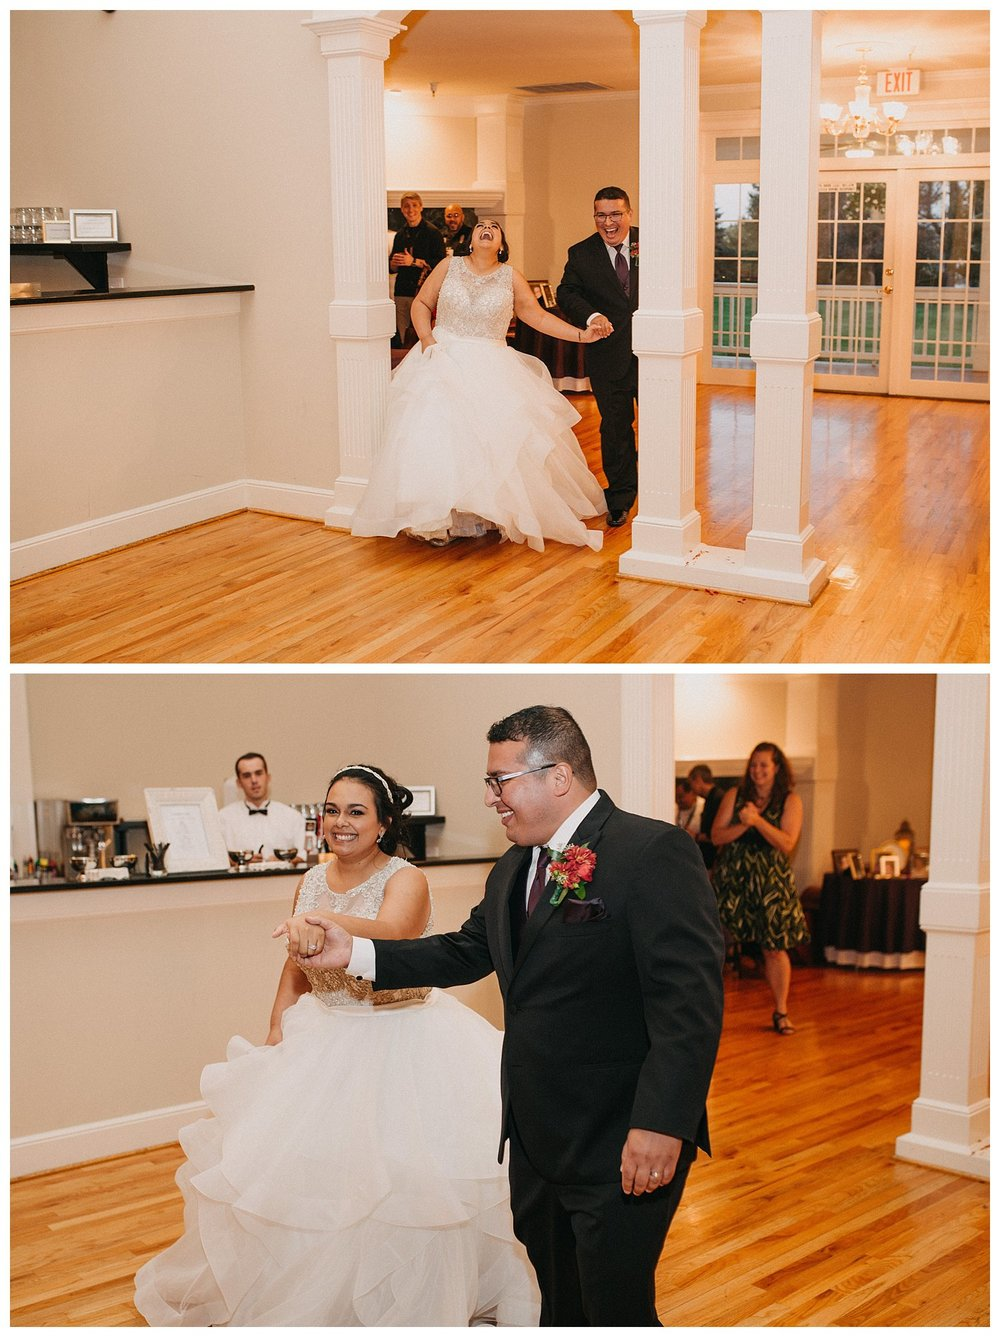 Kelsey_Diane_Photography_Hawthorne_House_Parkville_Kansas_City_Wedding_Veronica_Pat_0067.jpg